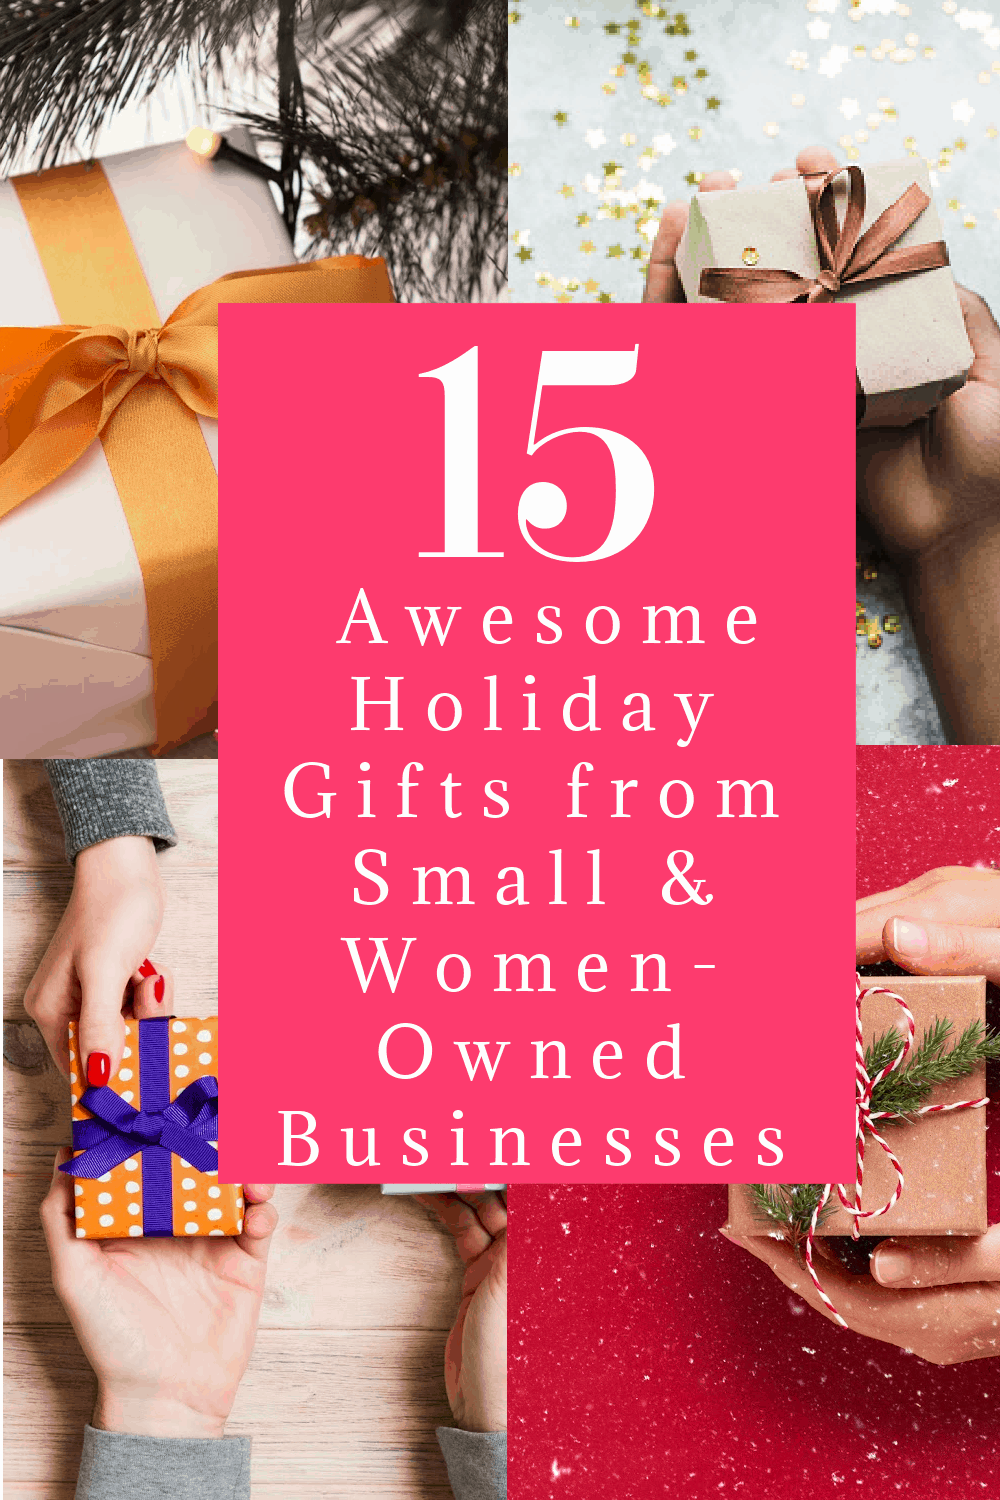 When you shop from these amazing small and women-owned businesses, you're not only giving your own family a gift they'll love; you're also helping other families put food on their table (and presents under the tree). Check them out!